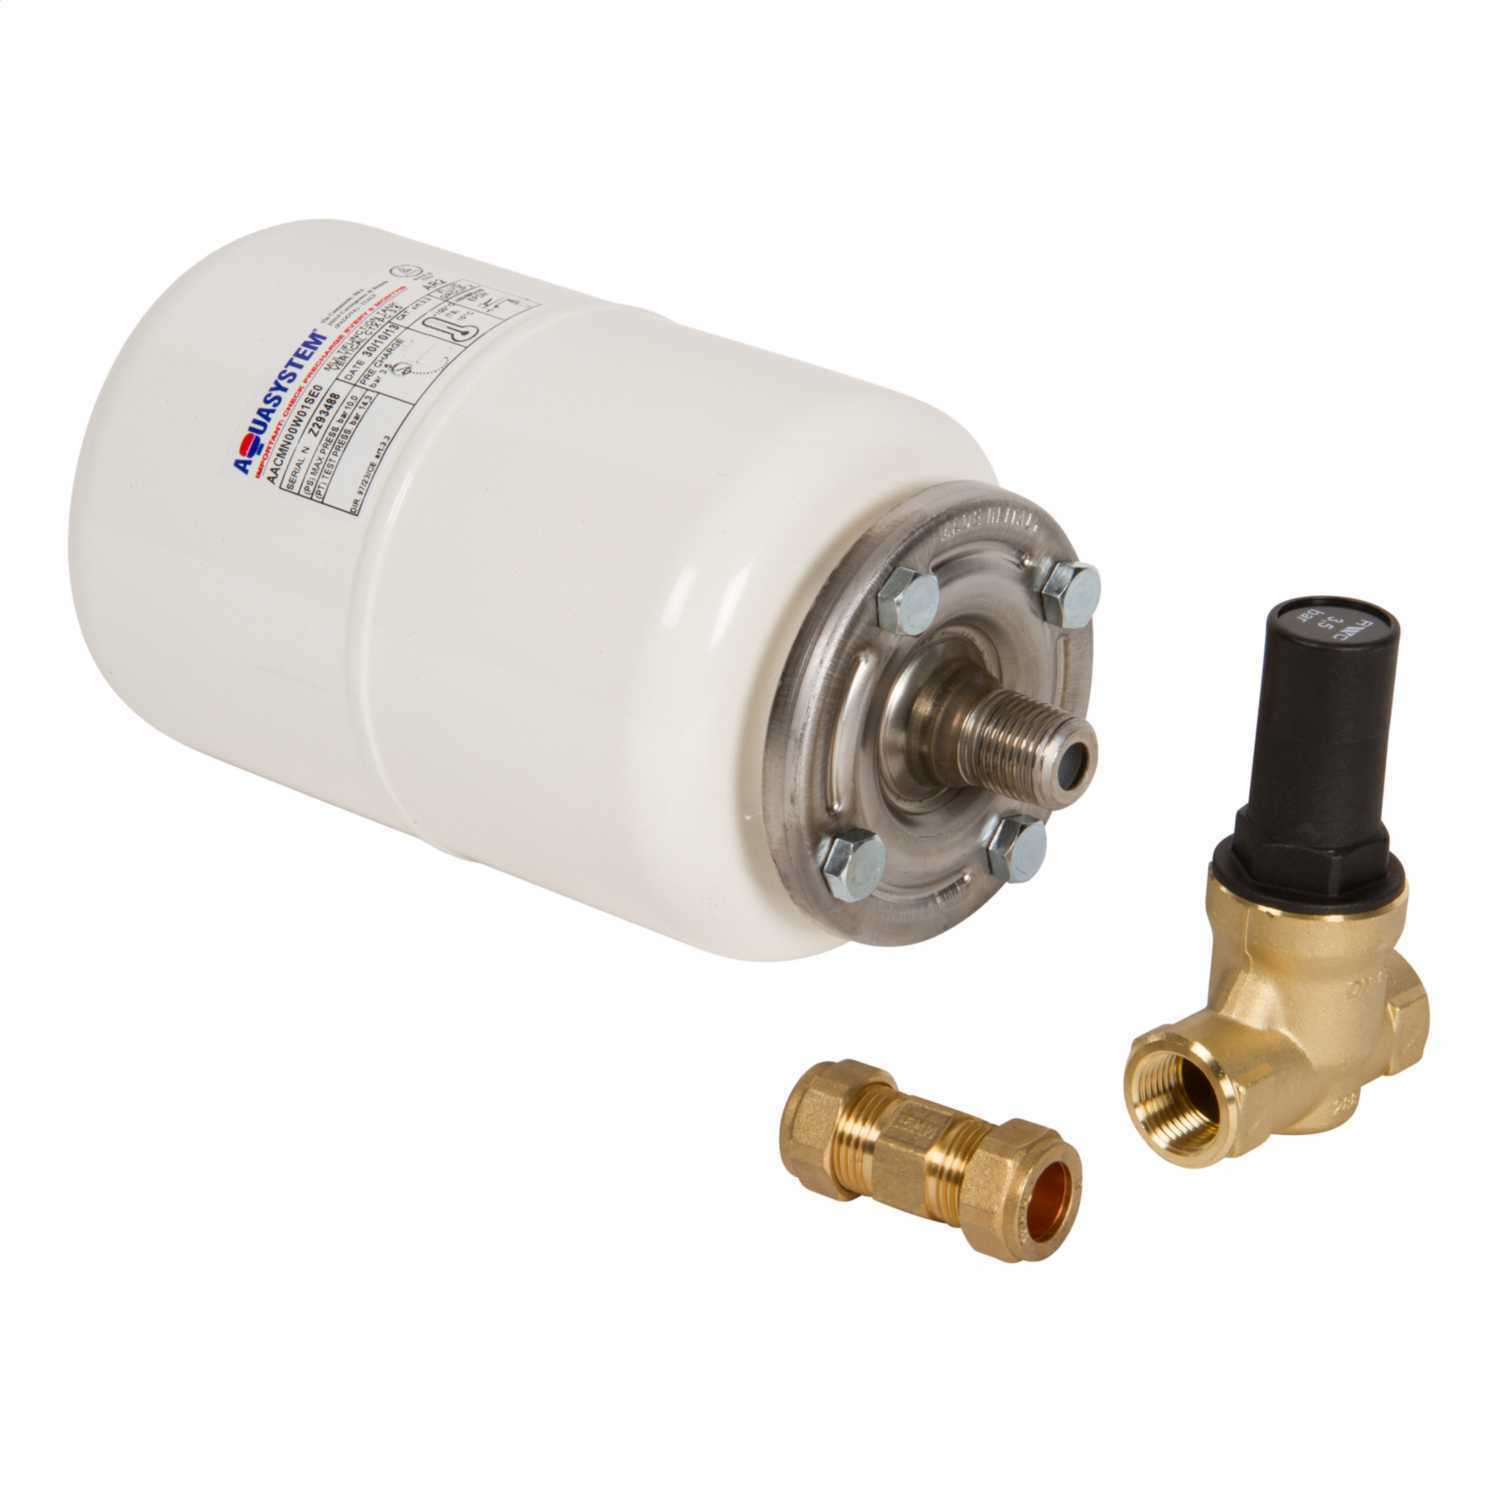 For EW and MW Heaters Redring Cold Water Control Pack